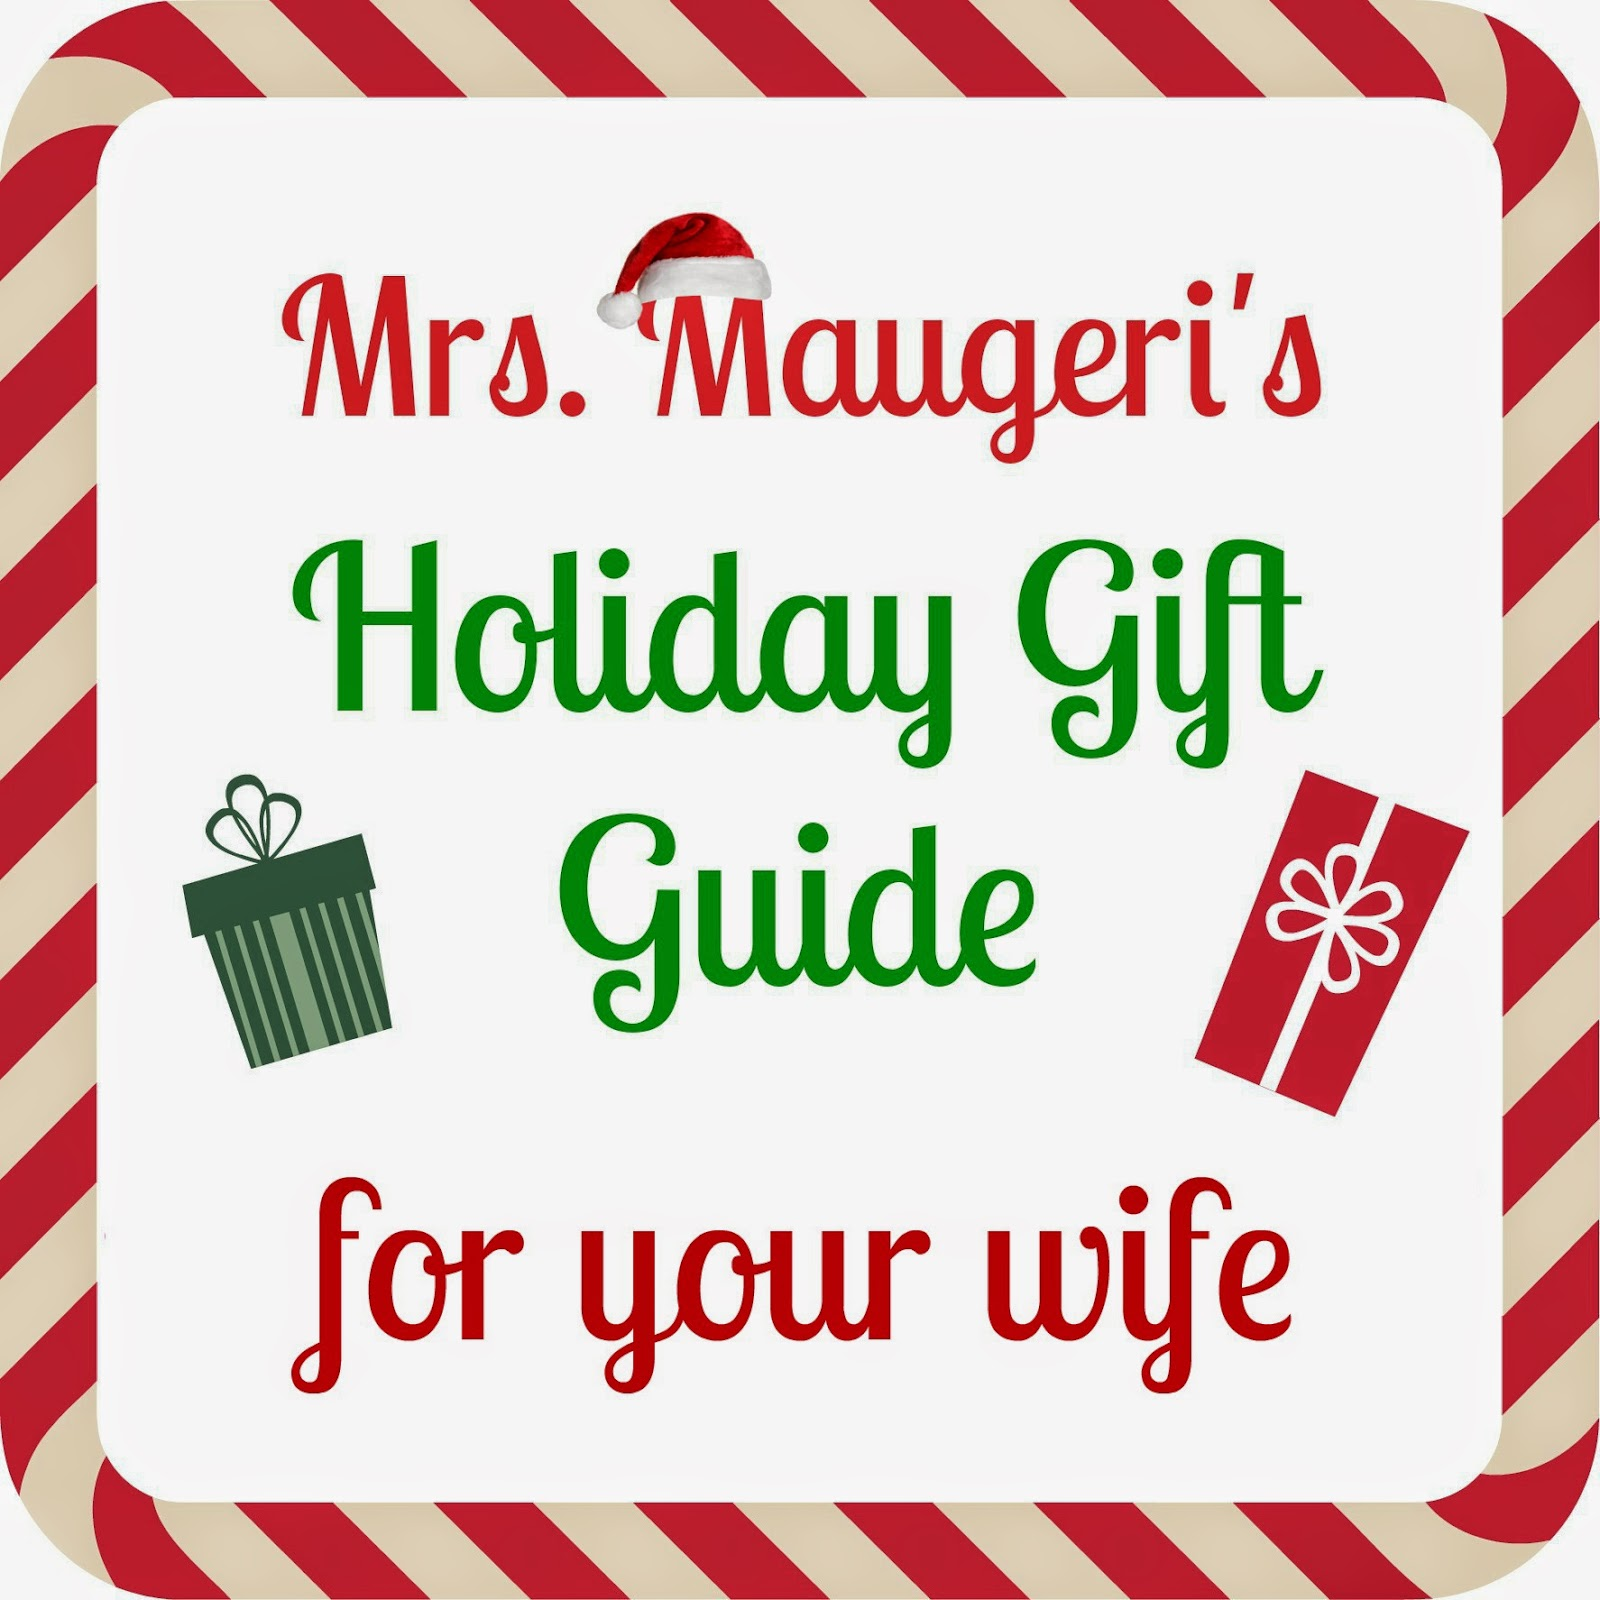 Holiday Gift Guide For Your Wife Enduring All Things